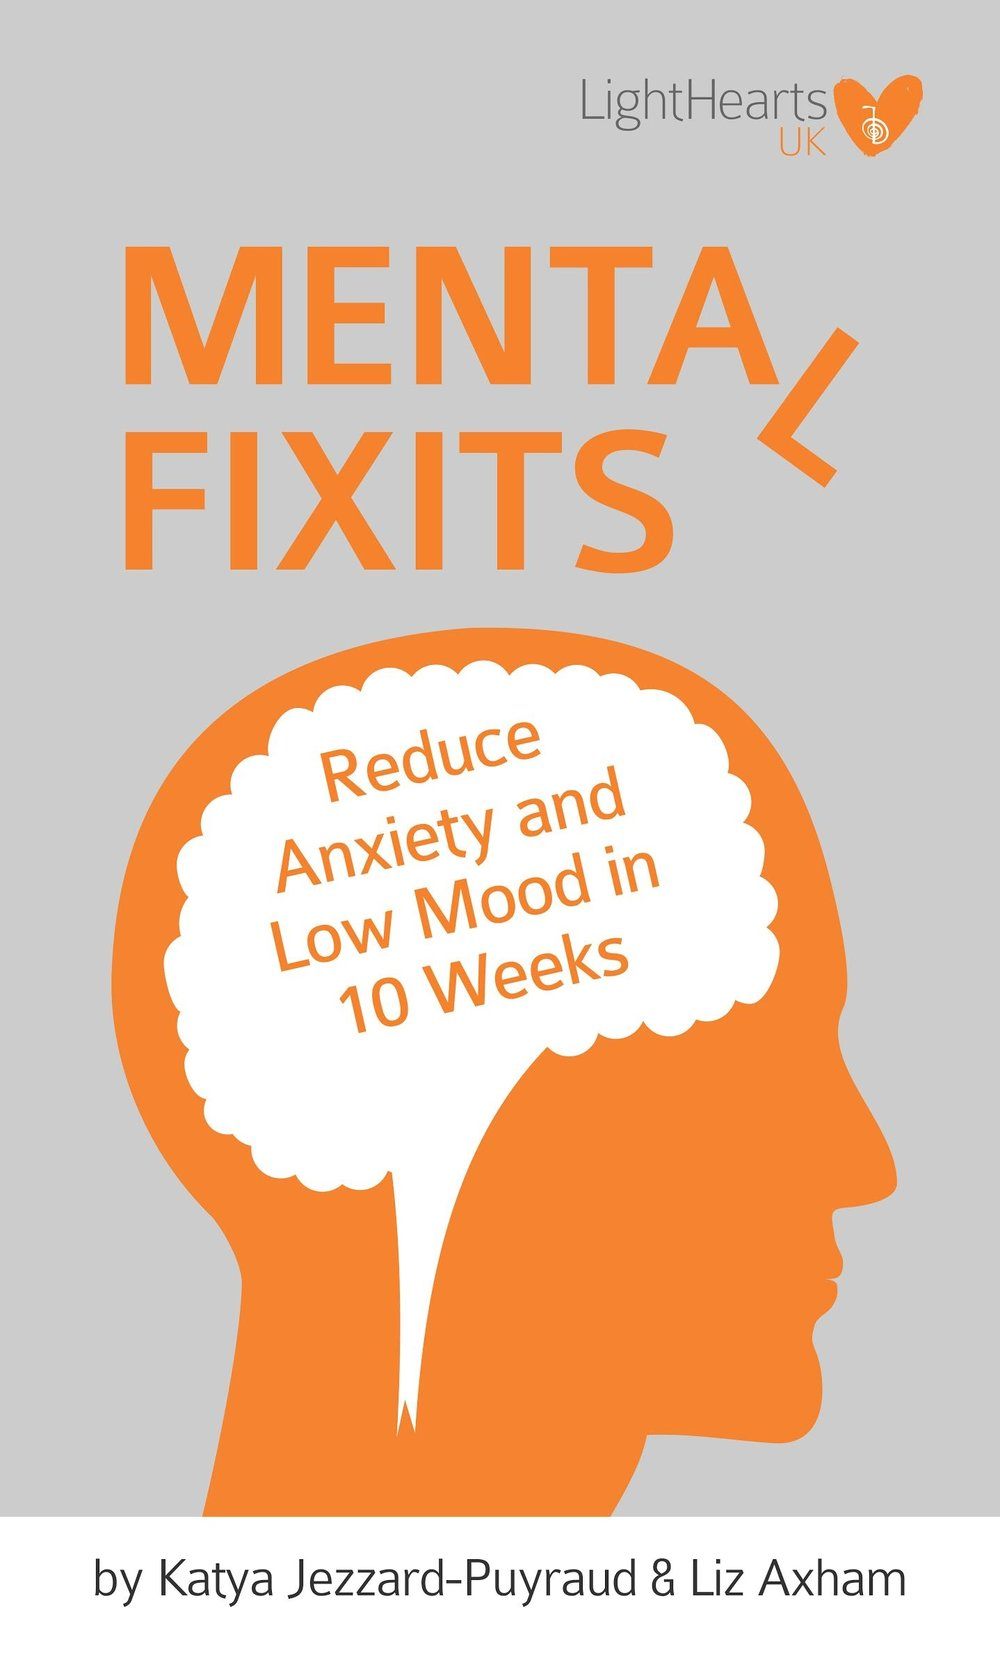 DOWNLOAD THE BOOK... - Download the LightHearts UK 'Mental Fixits' mental health course.Includes the whole 10-week course plus personal stories from the LightHearts founders on how to deal with low self-esteem, eating disorders, depression, anxious thoughts and panic attacks. Free with Kindle Unlimited.Click HERE to go to Amazon and find out how you can download your copy now.